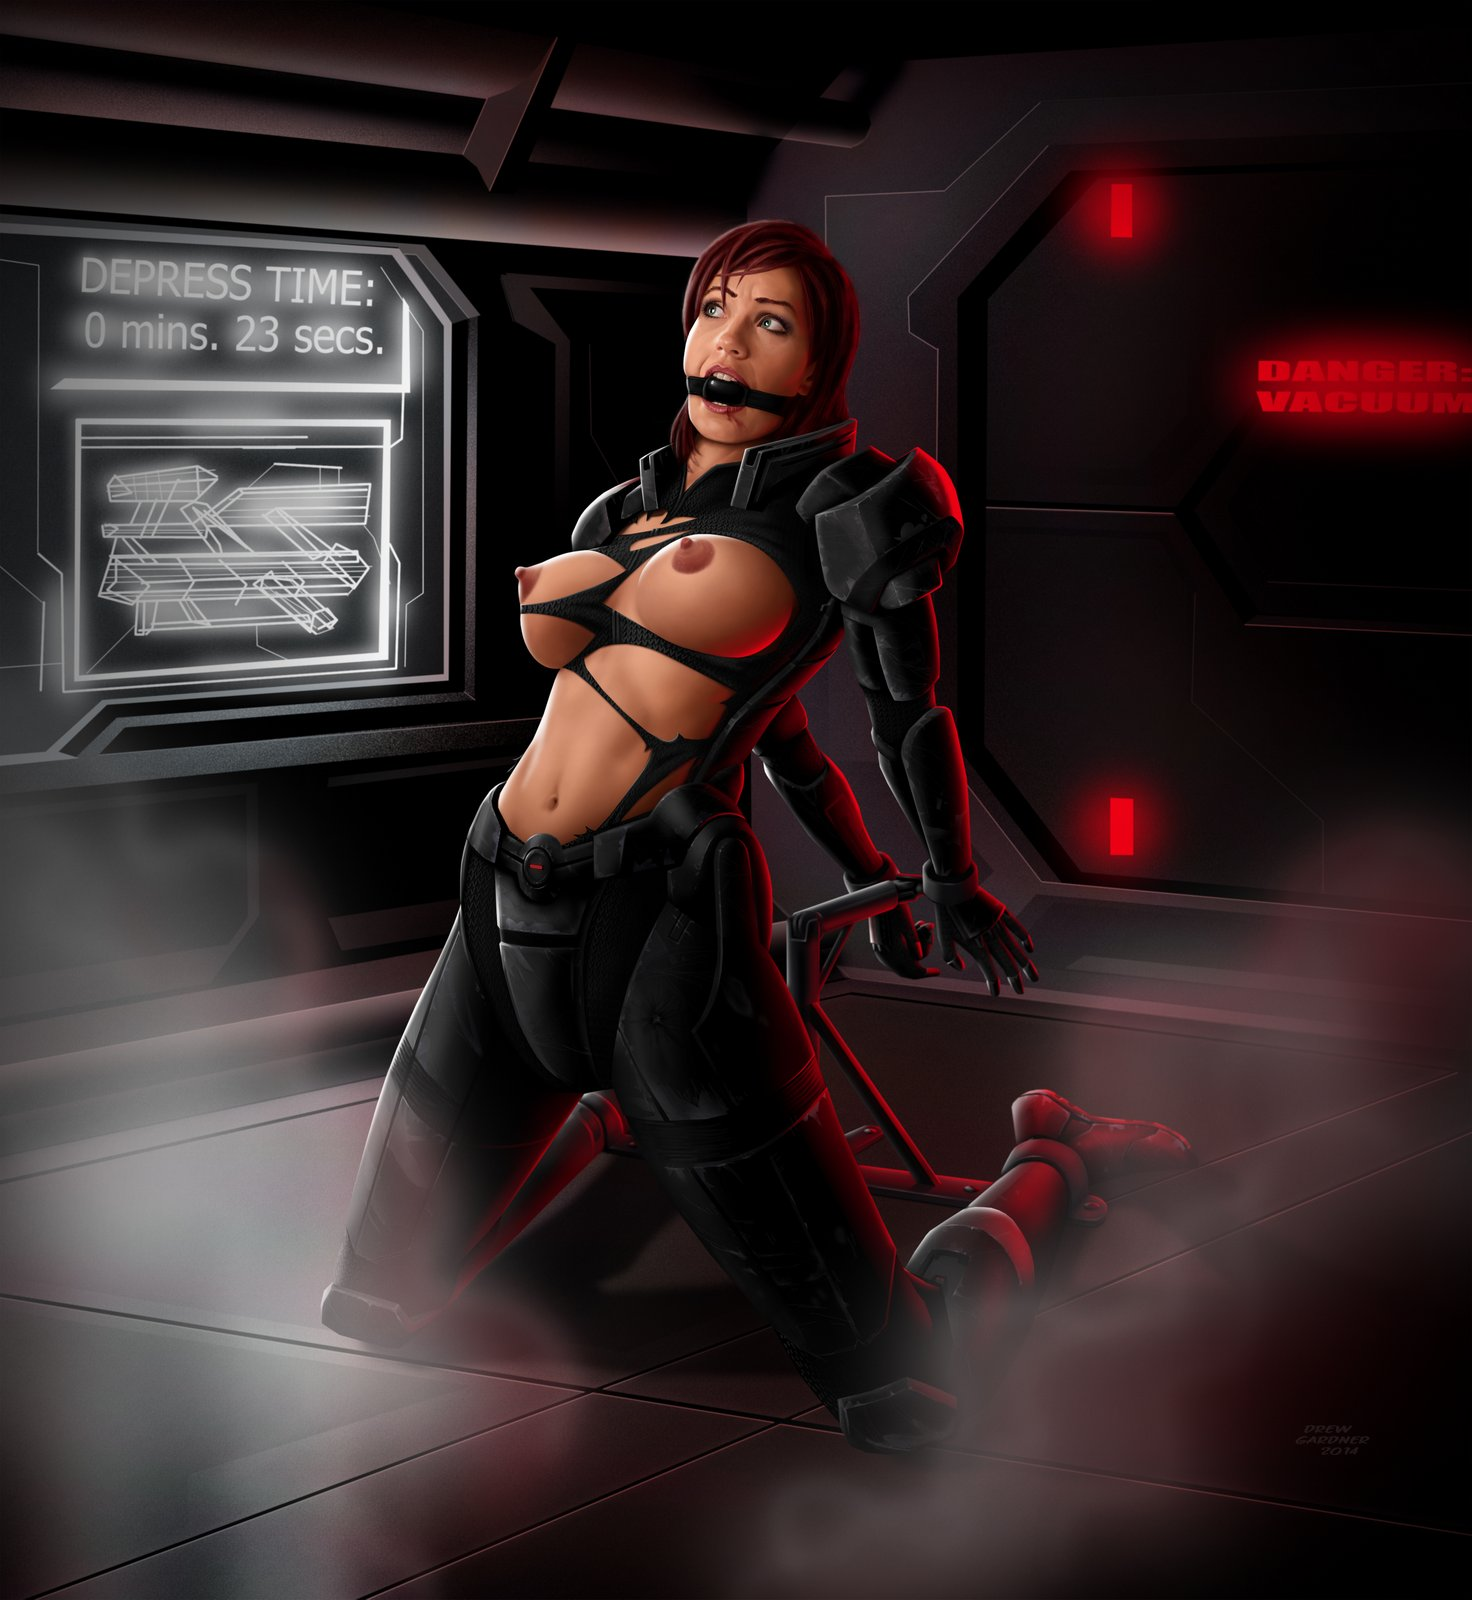 Mass effect liara bound gagged stories porn submissive butts